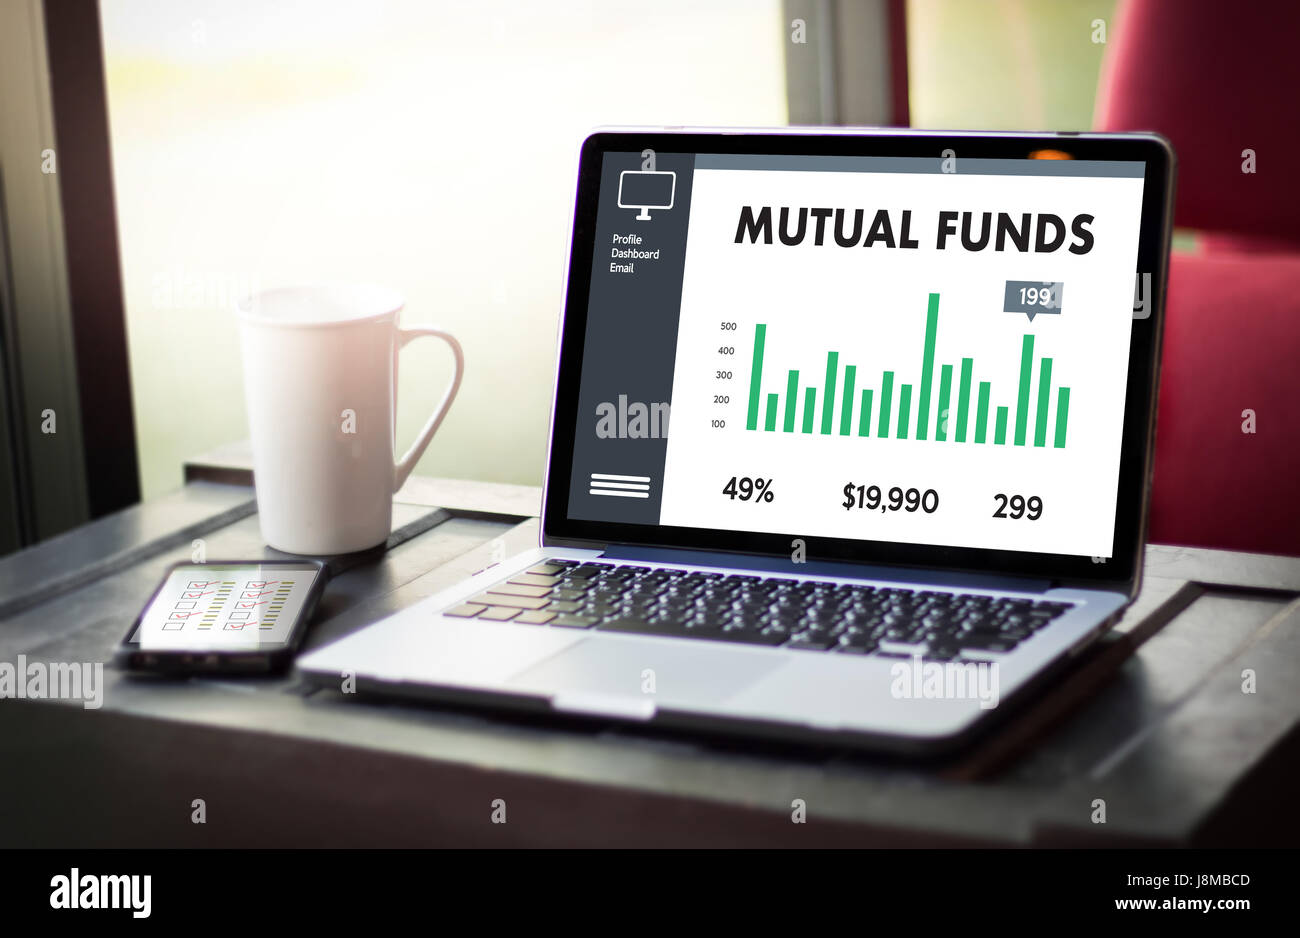 MUTUAL FUNDS Finance and Money concept , Focus on mutual fund investing - Stock Image